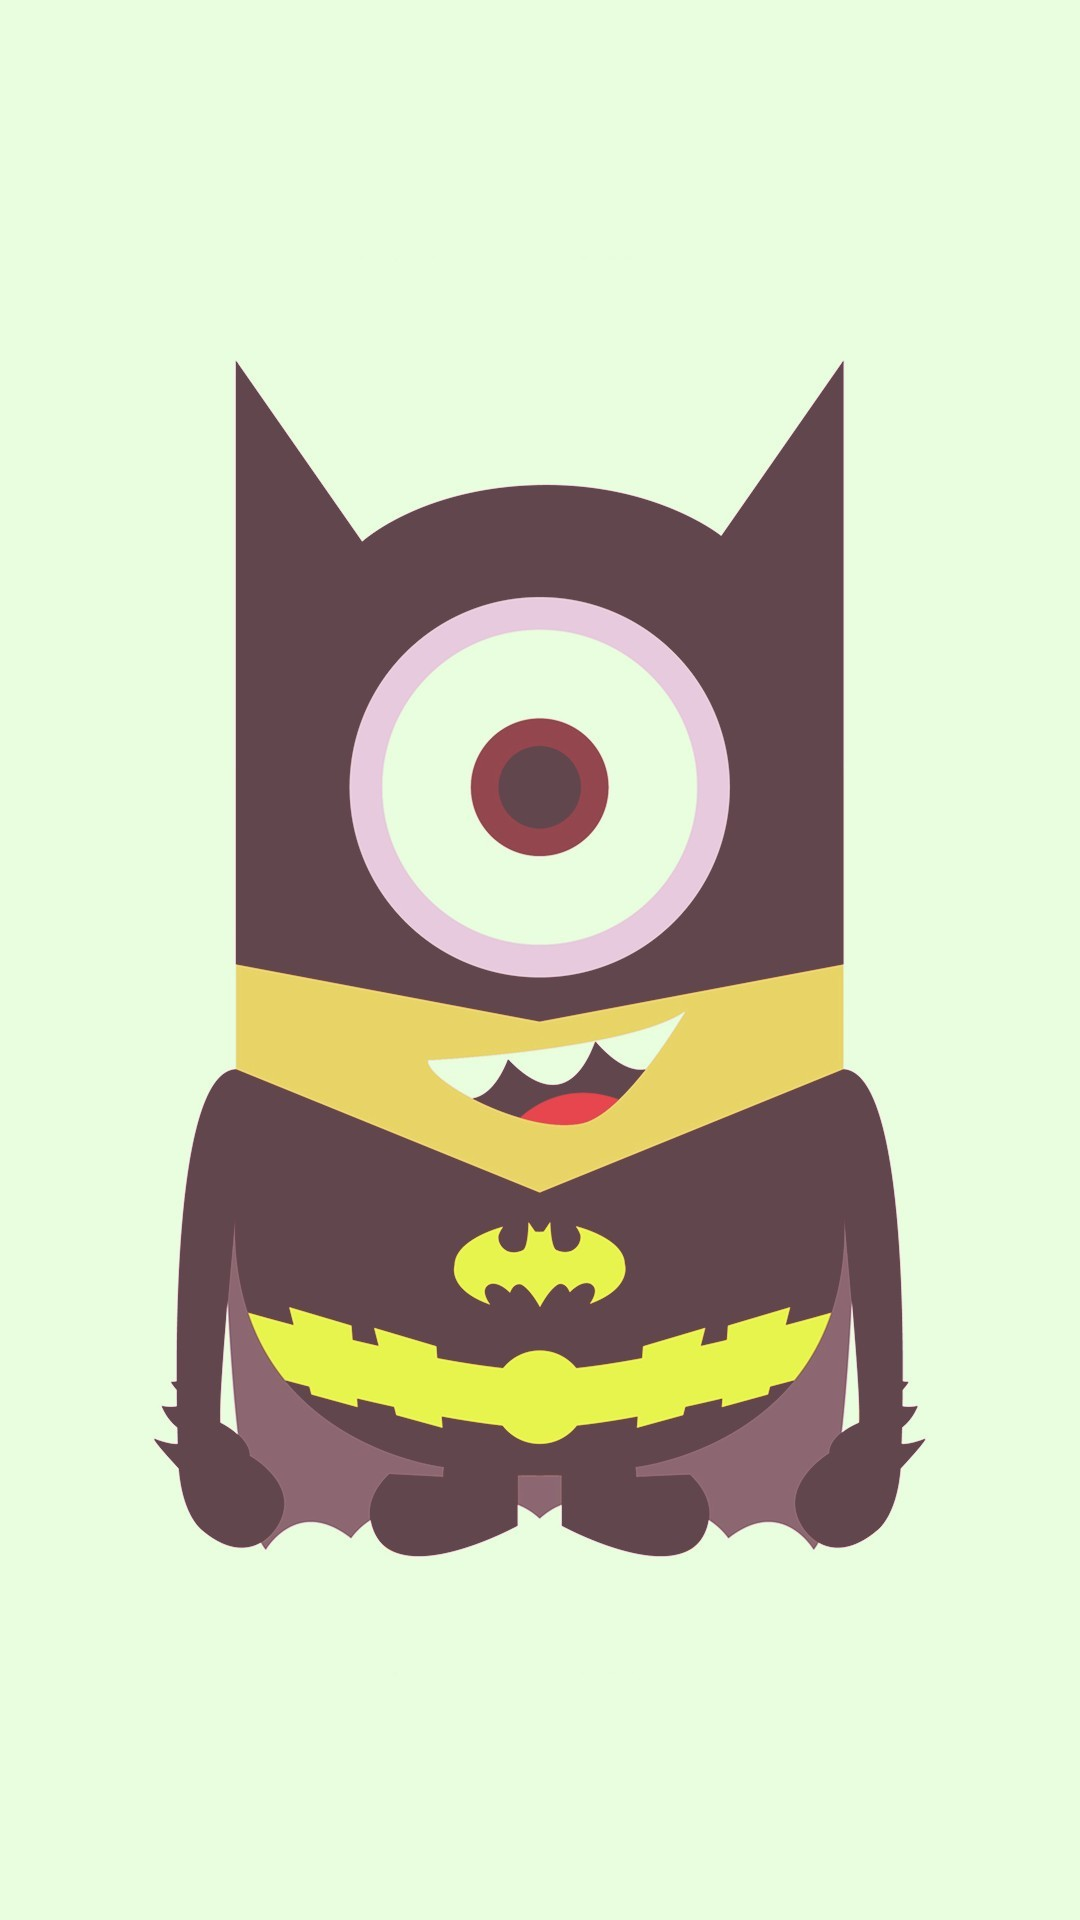 1080x1920 Hawkeye Minion Avengers iphone 6 plus wallpaper HD - Despicable Me, 2015  Halloween - minion: Adorable! which Halloween minion iphone 6 plus wallpaper  would ...